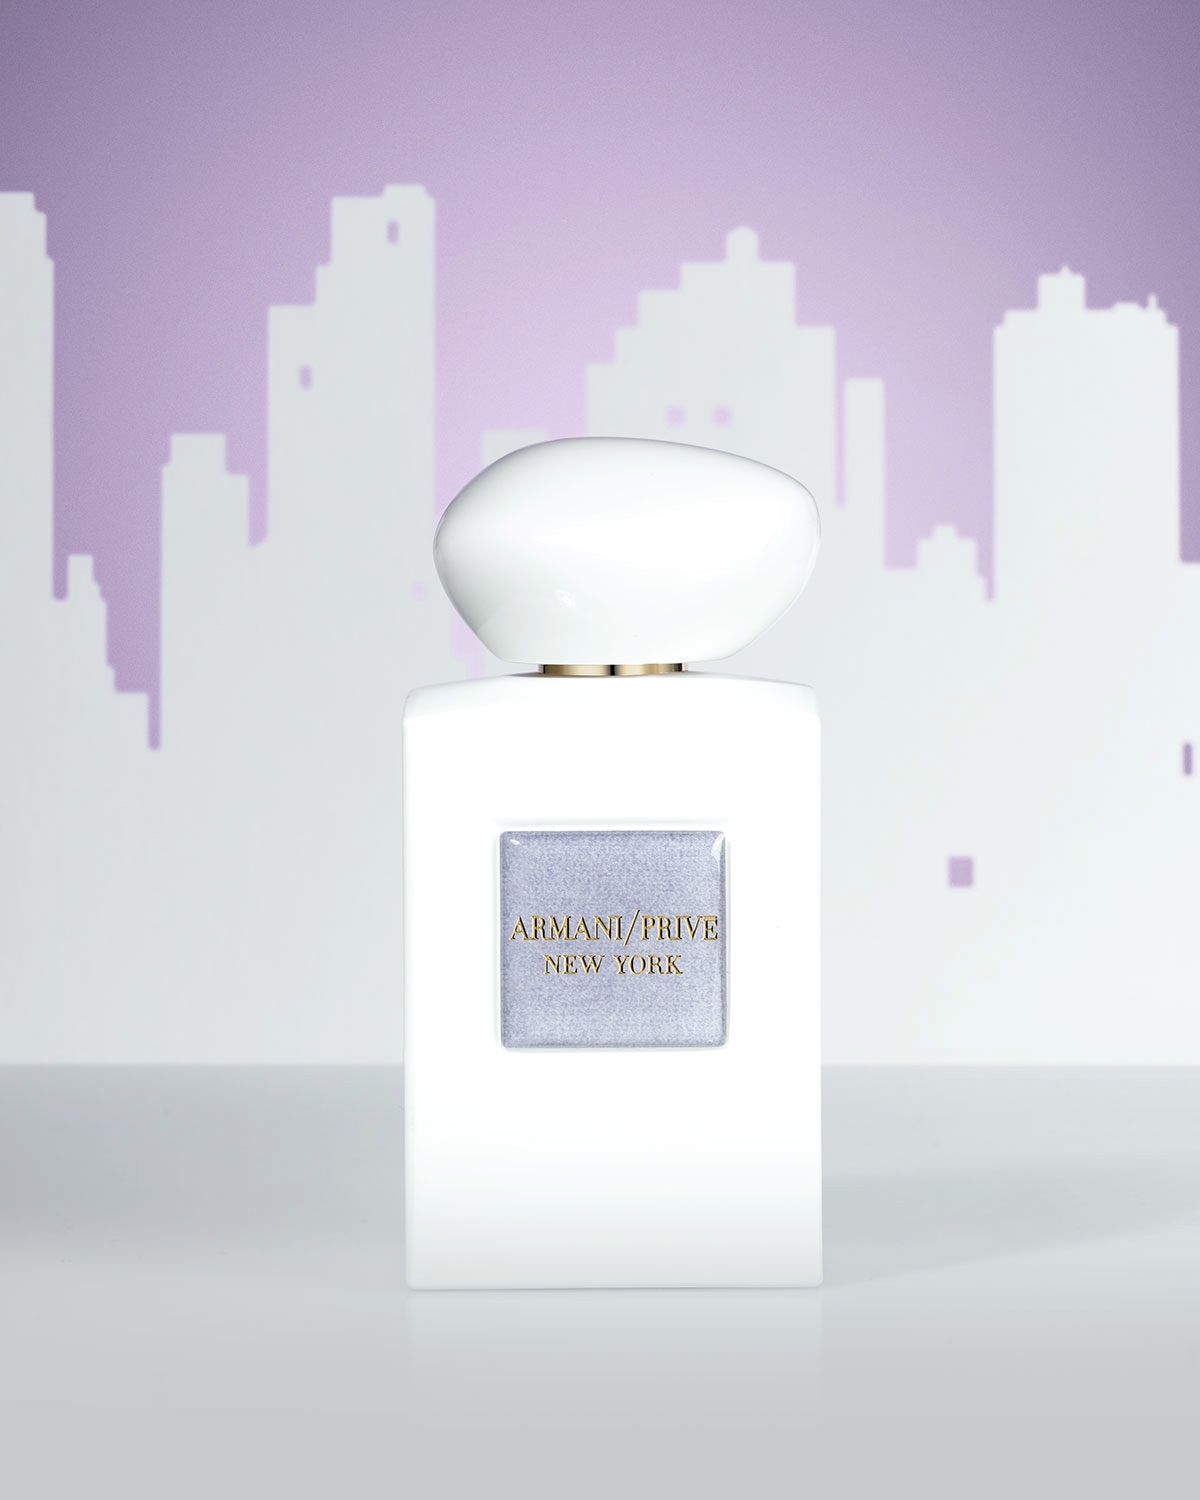 Giorgio Armani Privé New York Edition fragrance